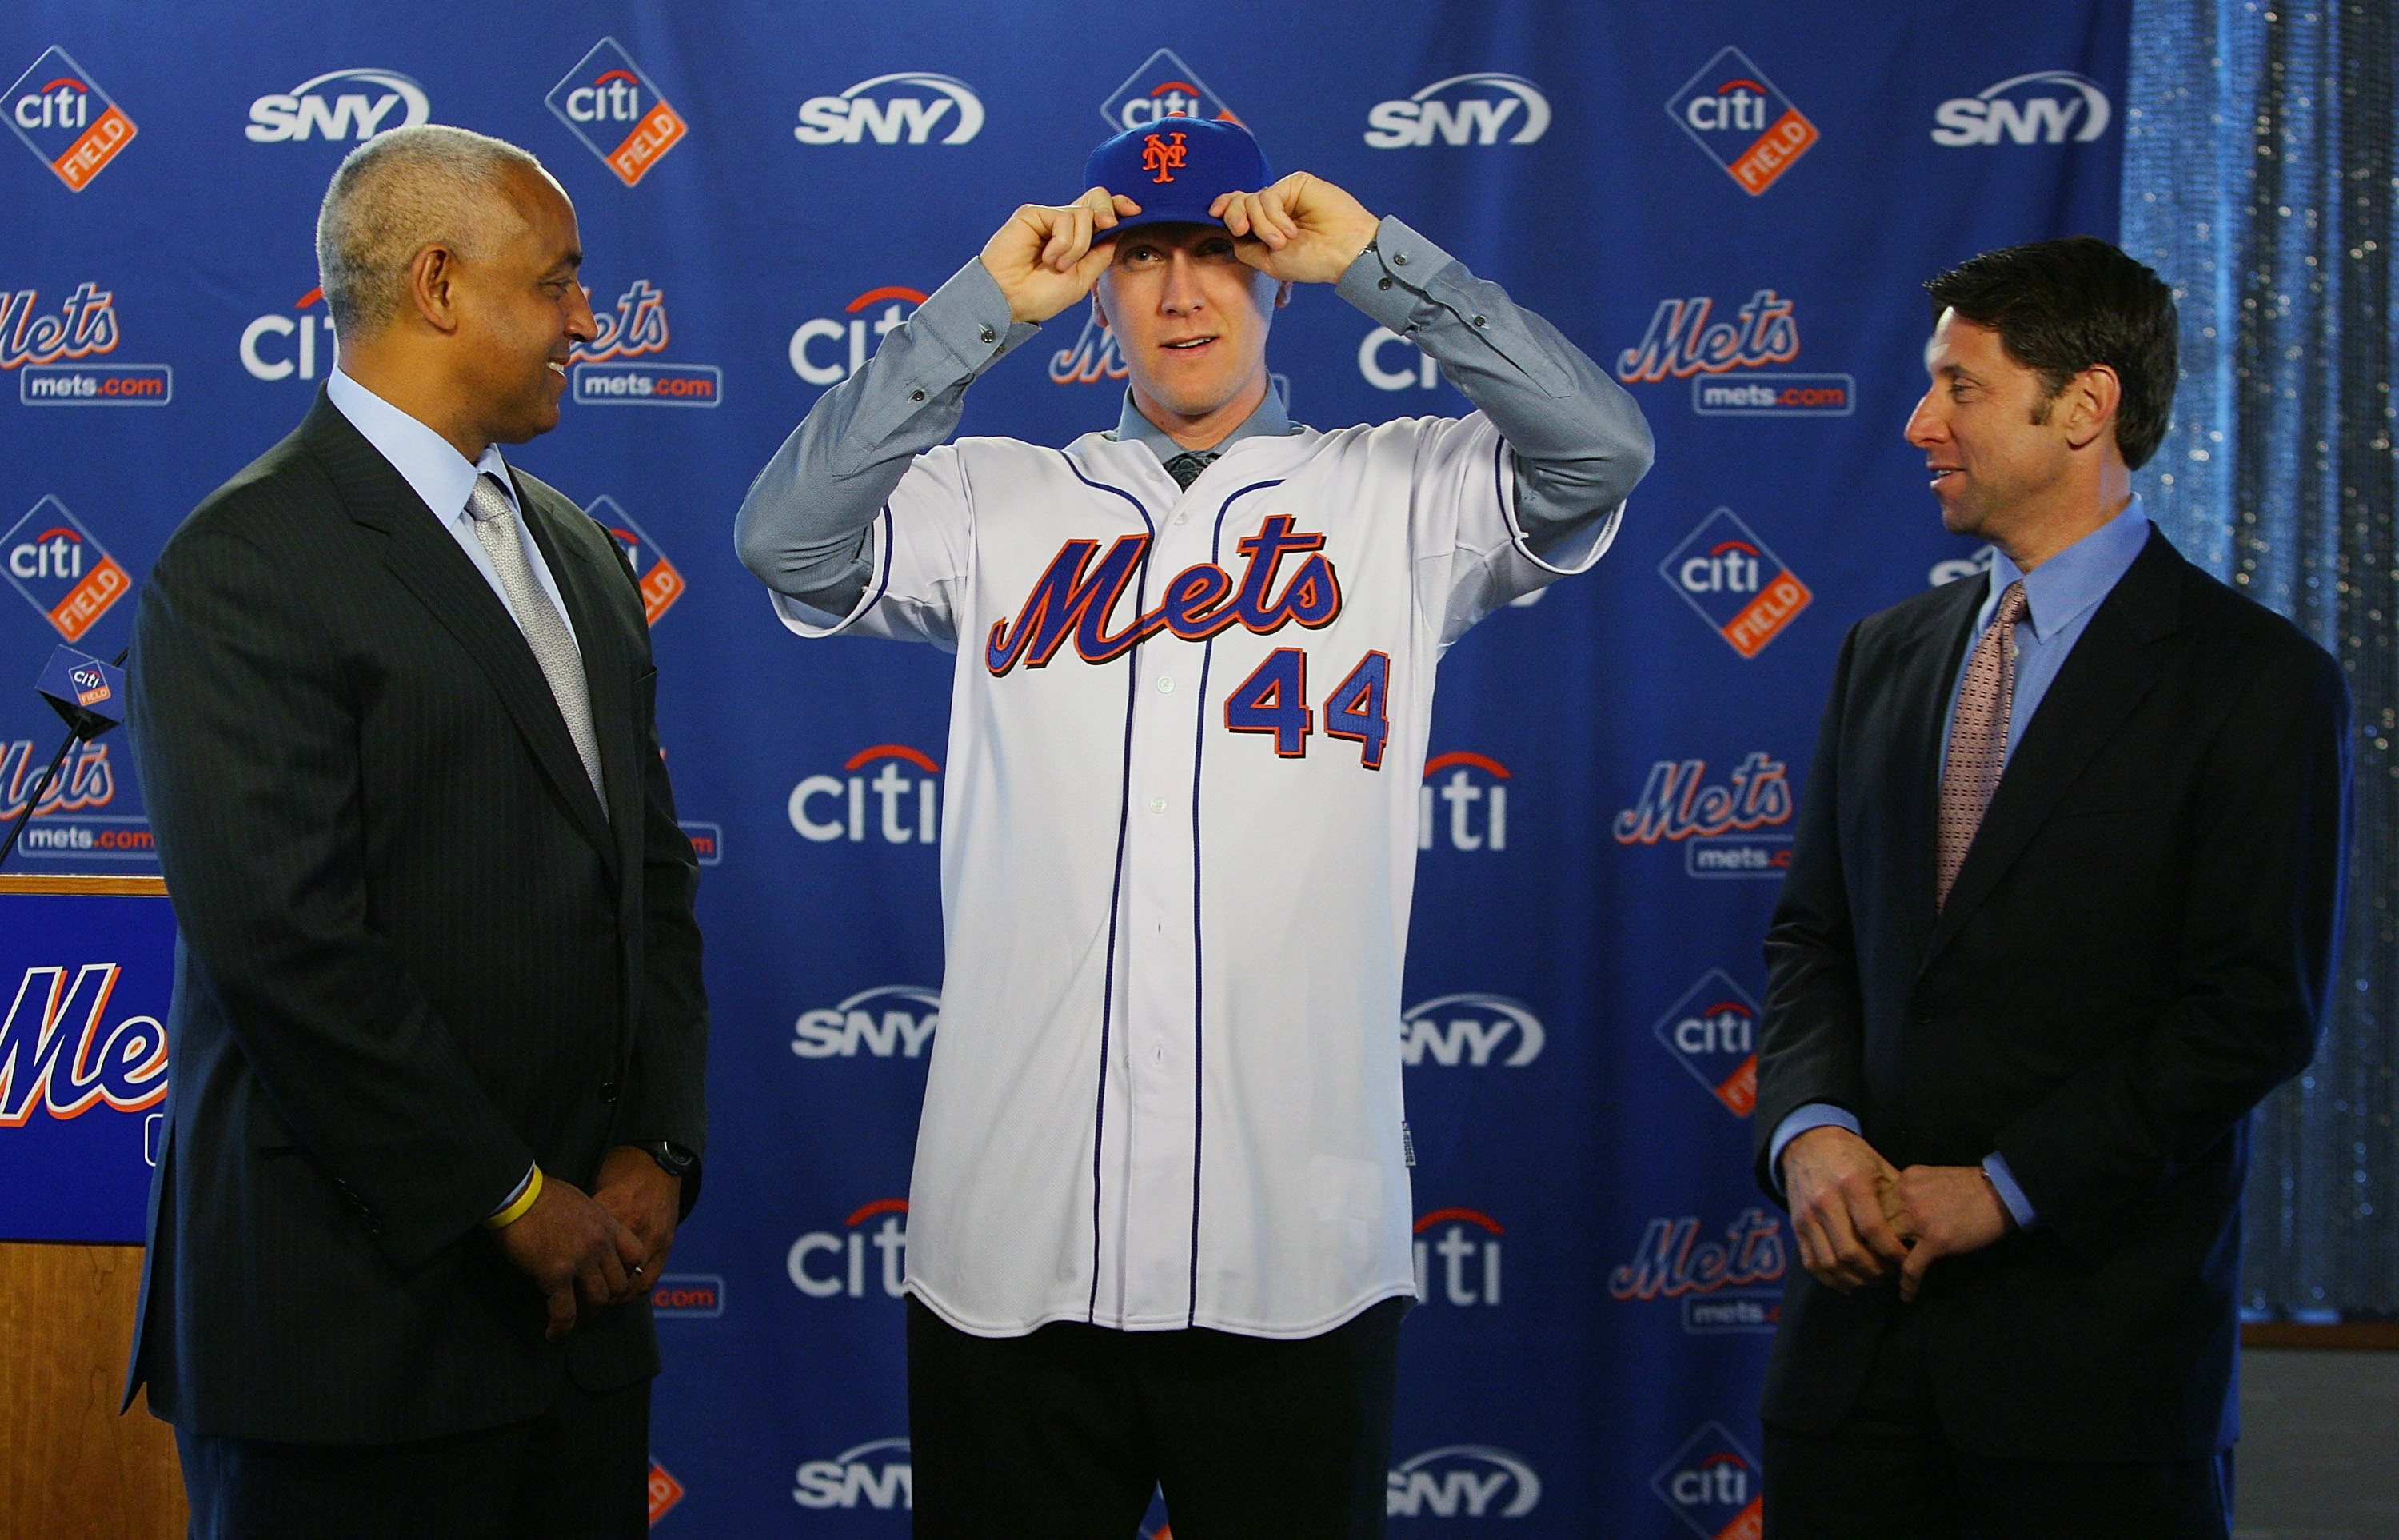 NEW YORK - JANUARY 05:  (L-R) General Manager Omar Minaya watches Jason Bay and put on a New York Mets hat as Mets COO Jeff Wilpon looks on during a press conference to announce Bay's signing to the New York Mets on January 5, 2010 at Citi Field in the Fl